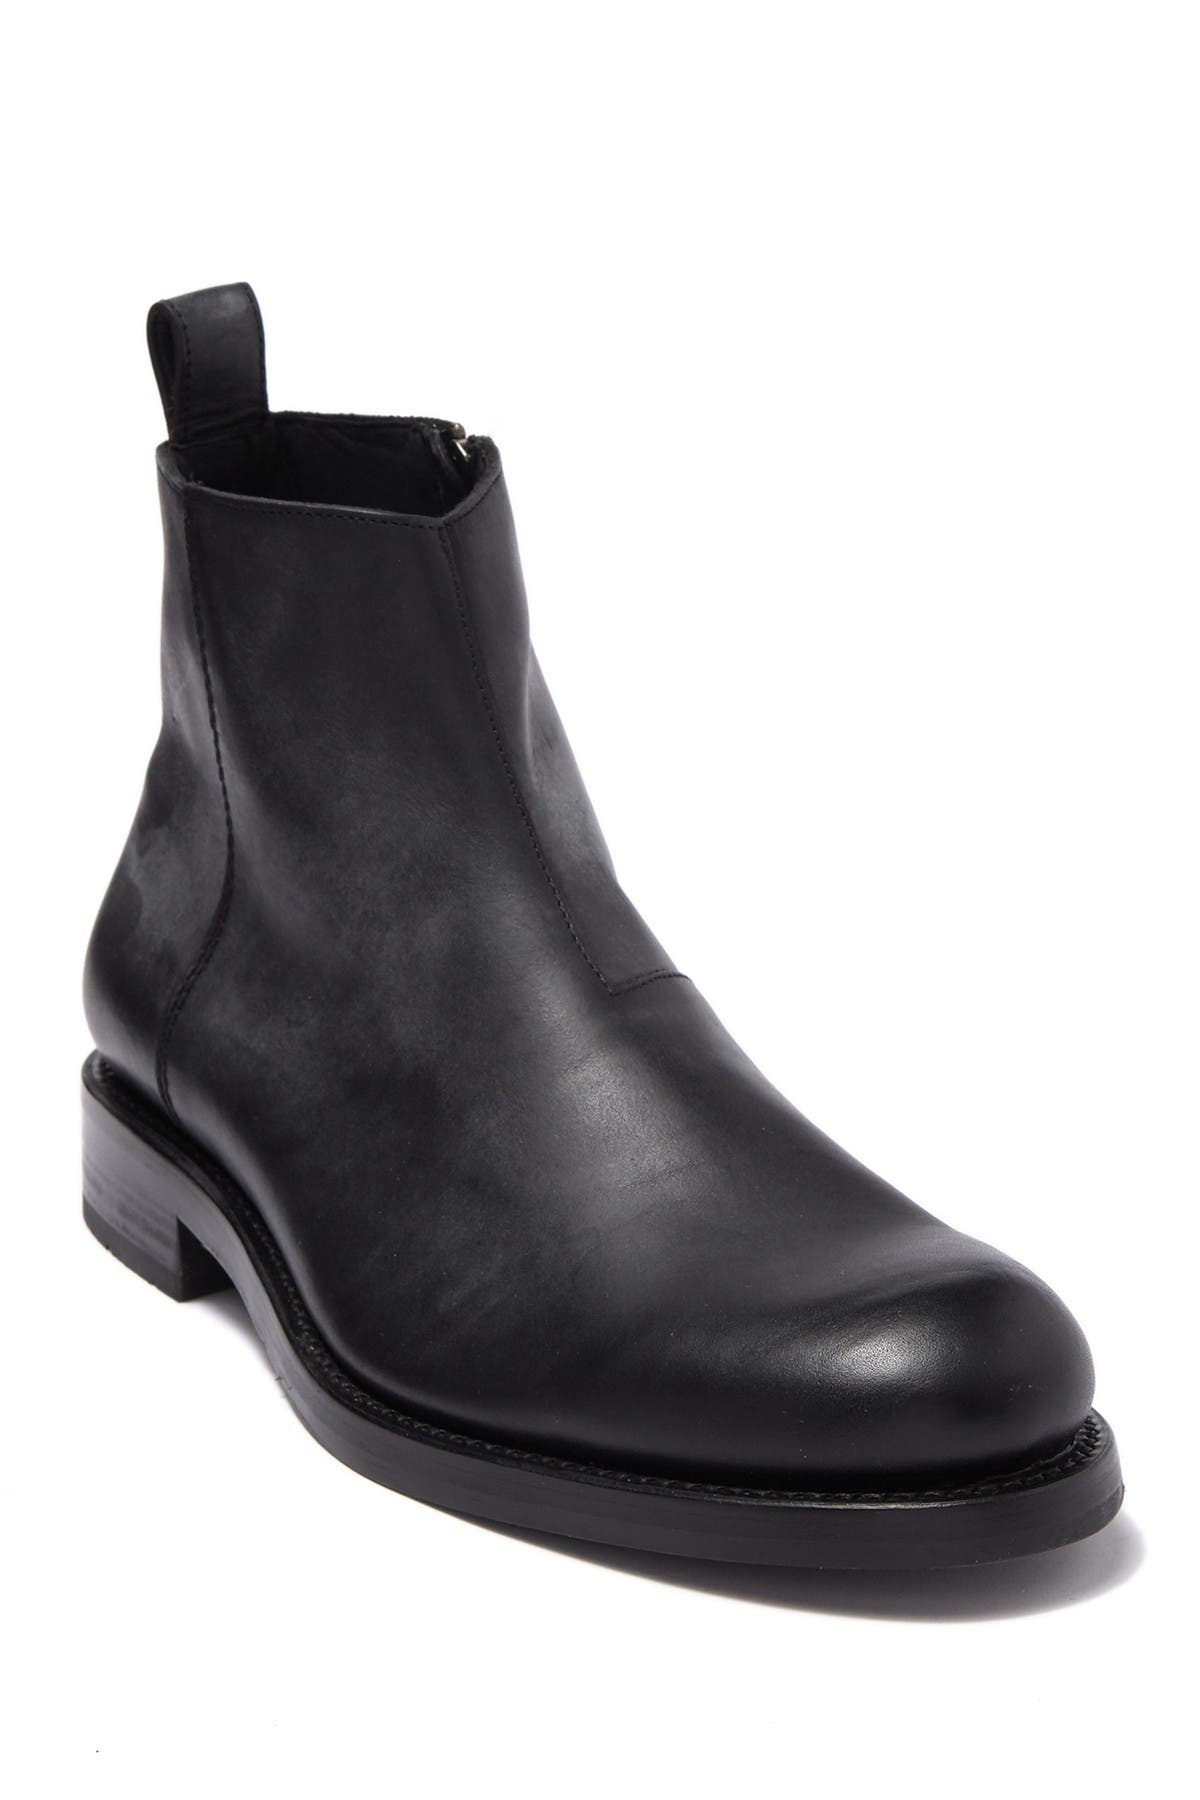 Image of Wolverine Montague Zip Leather Boot